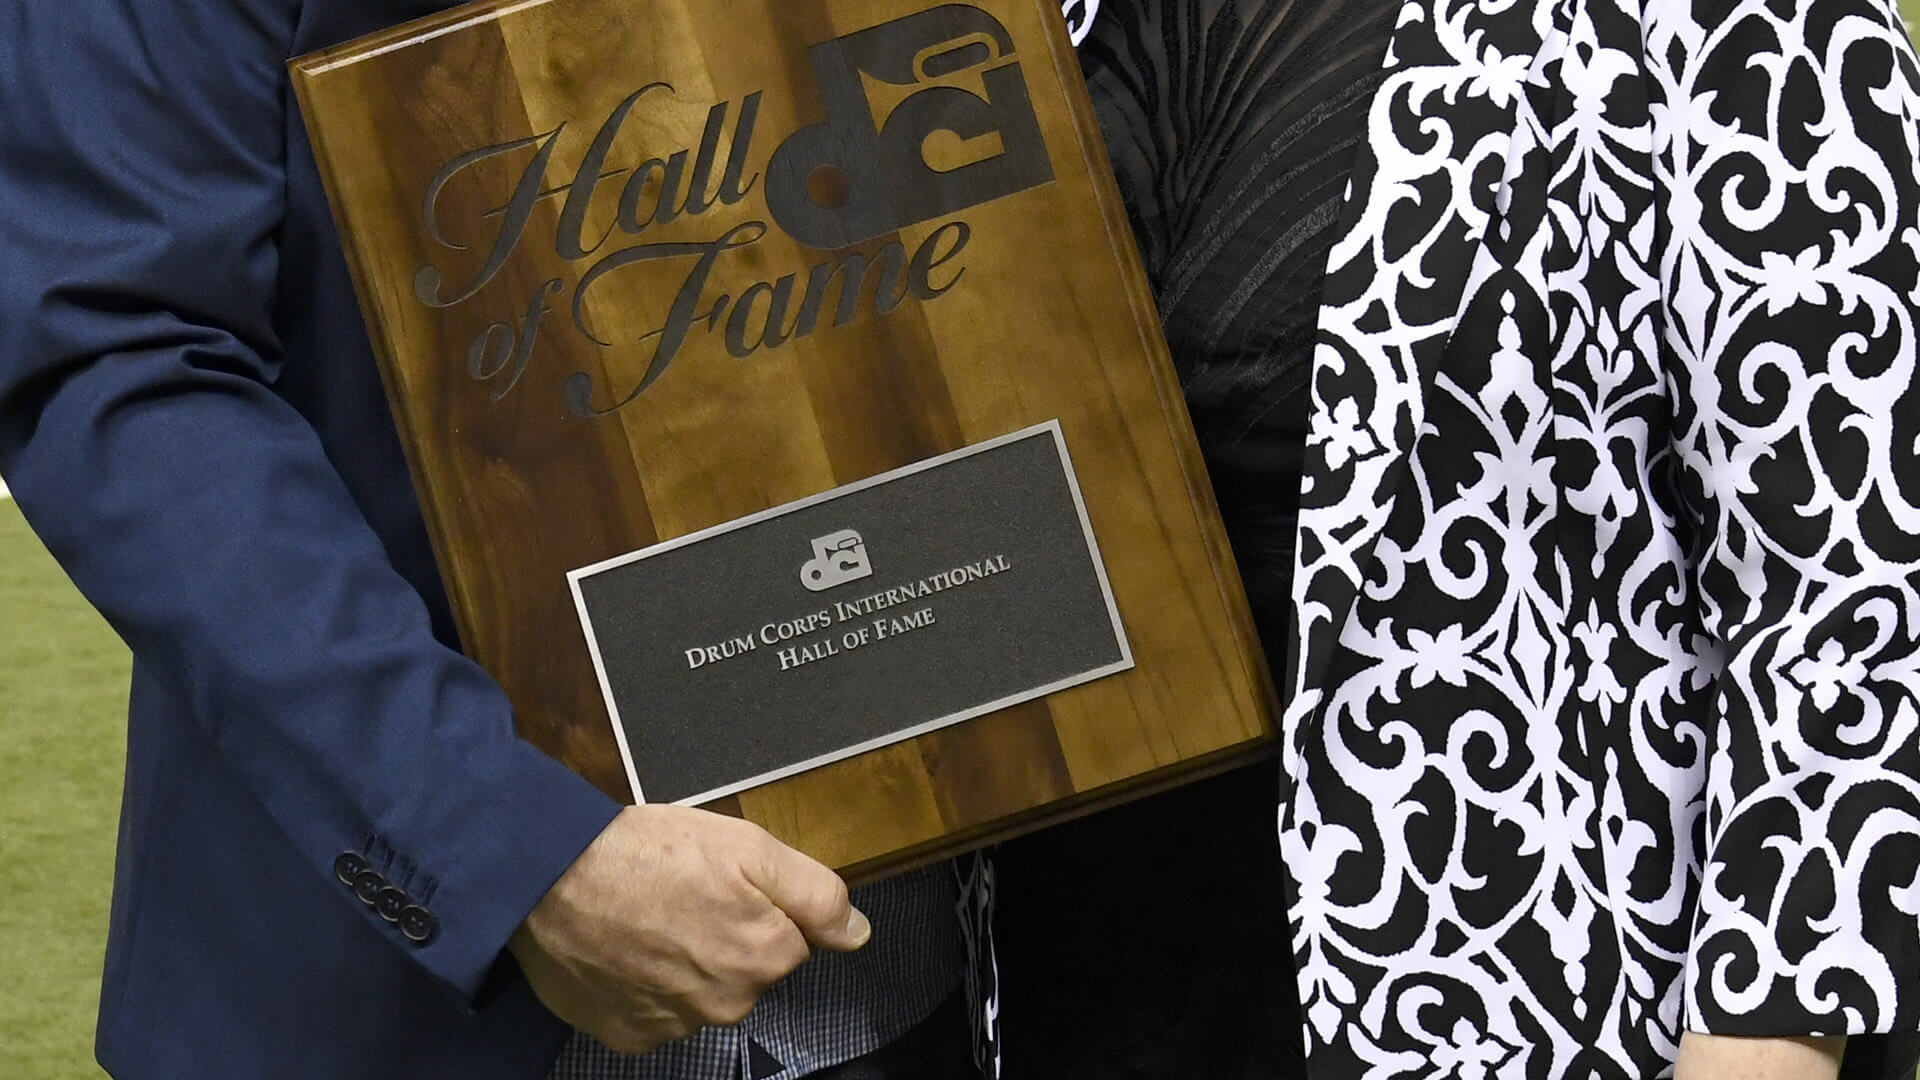 Introducing the DCI Hall of Fame Class of 2017